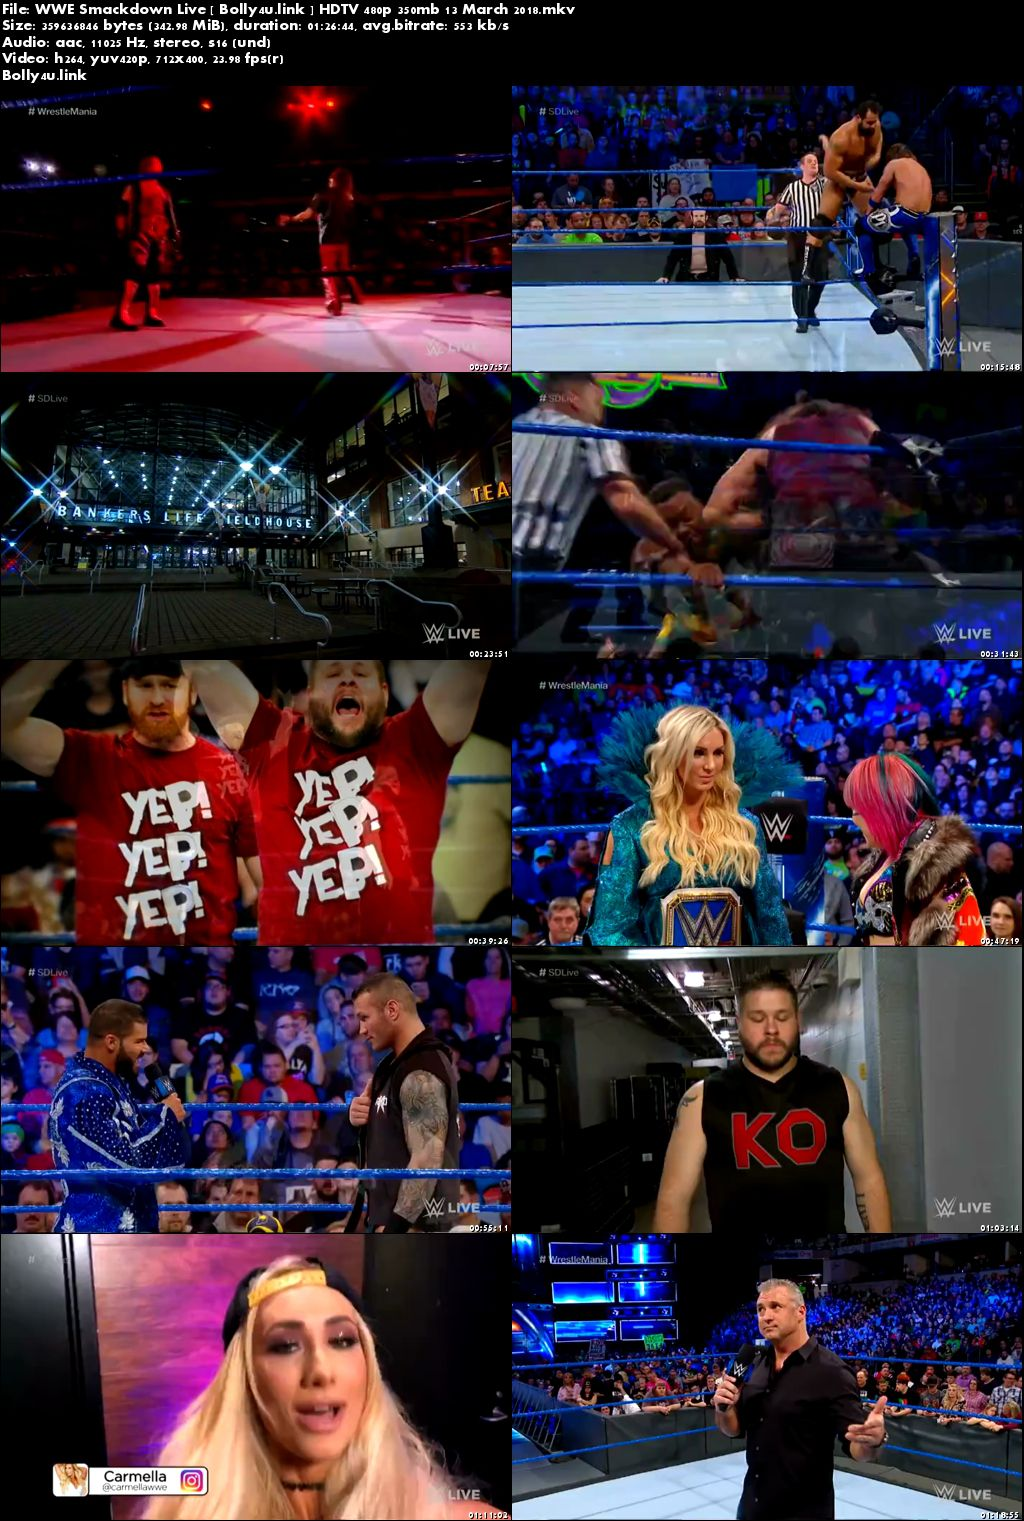 WWE Smackdown Live HDTV 480p 350mb 13 March 2018 Download